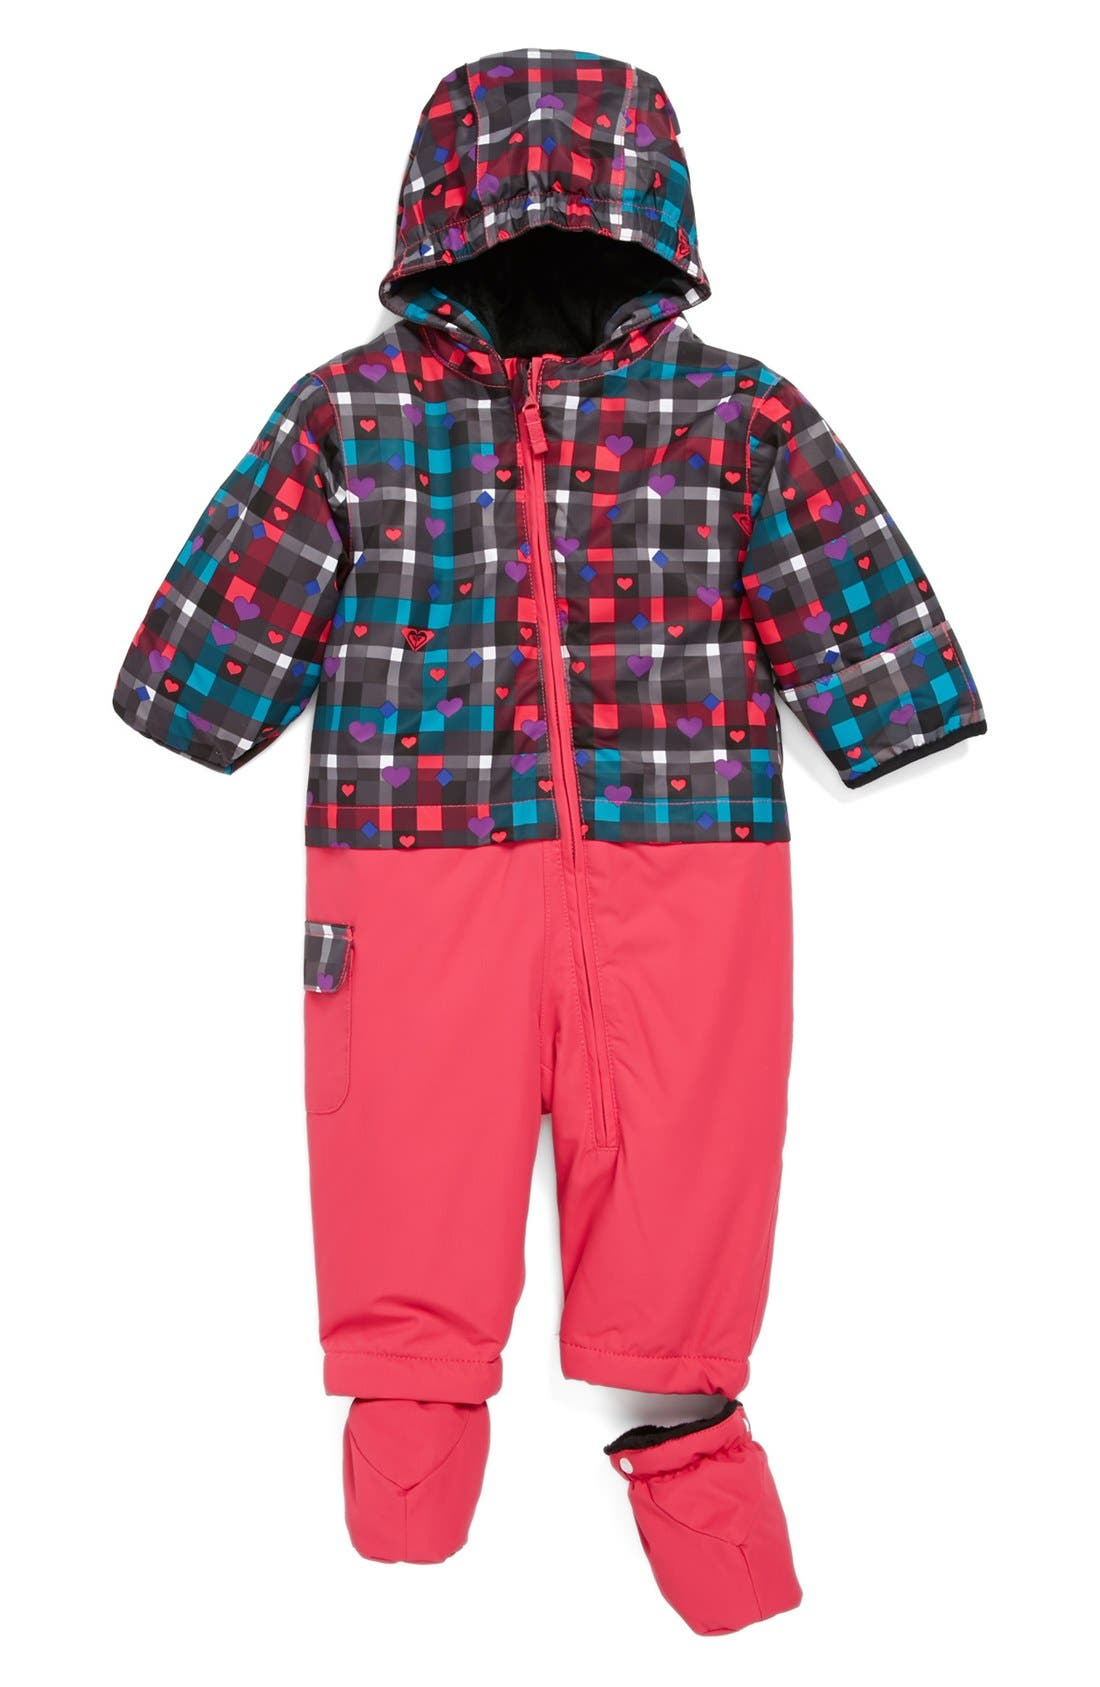 Main Image - Roxy 'Sweet Pea' Snow Suit (Baby Girls)